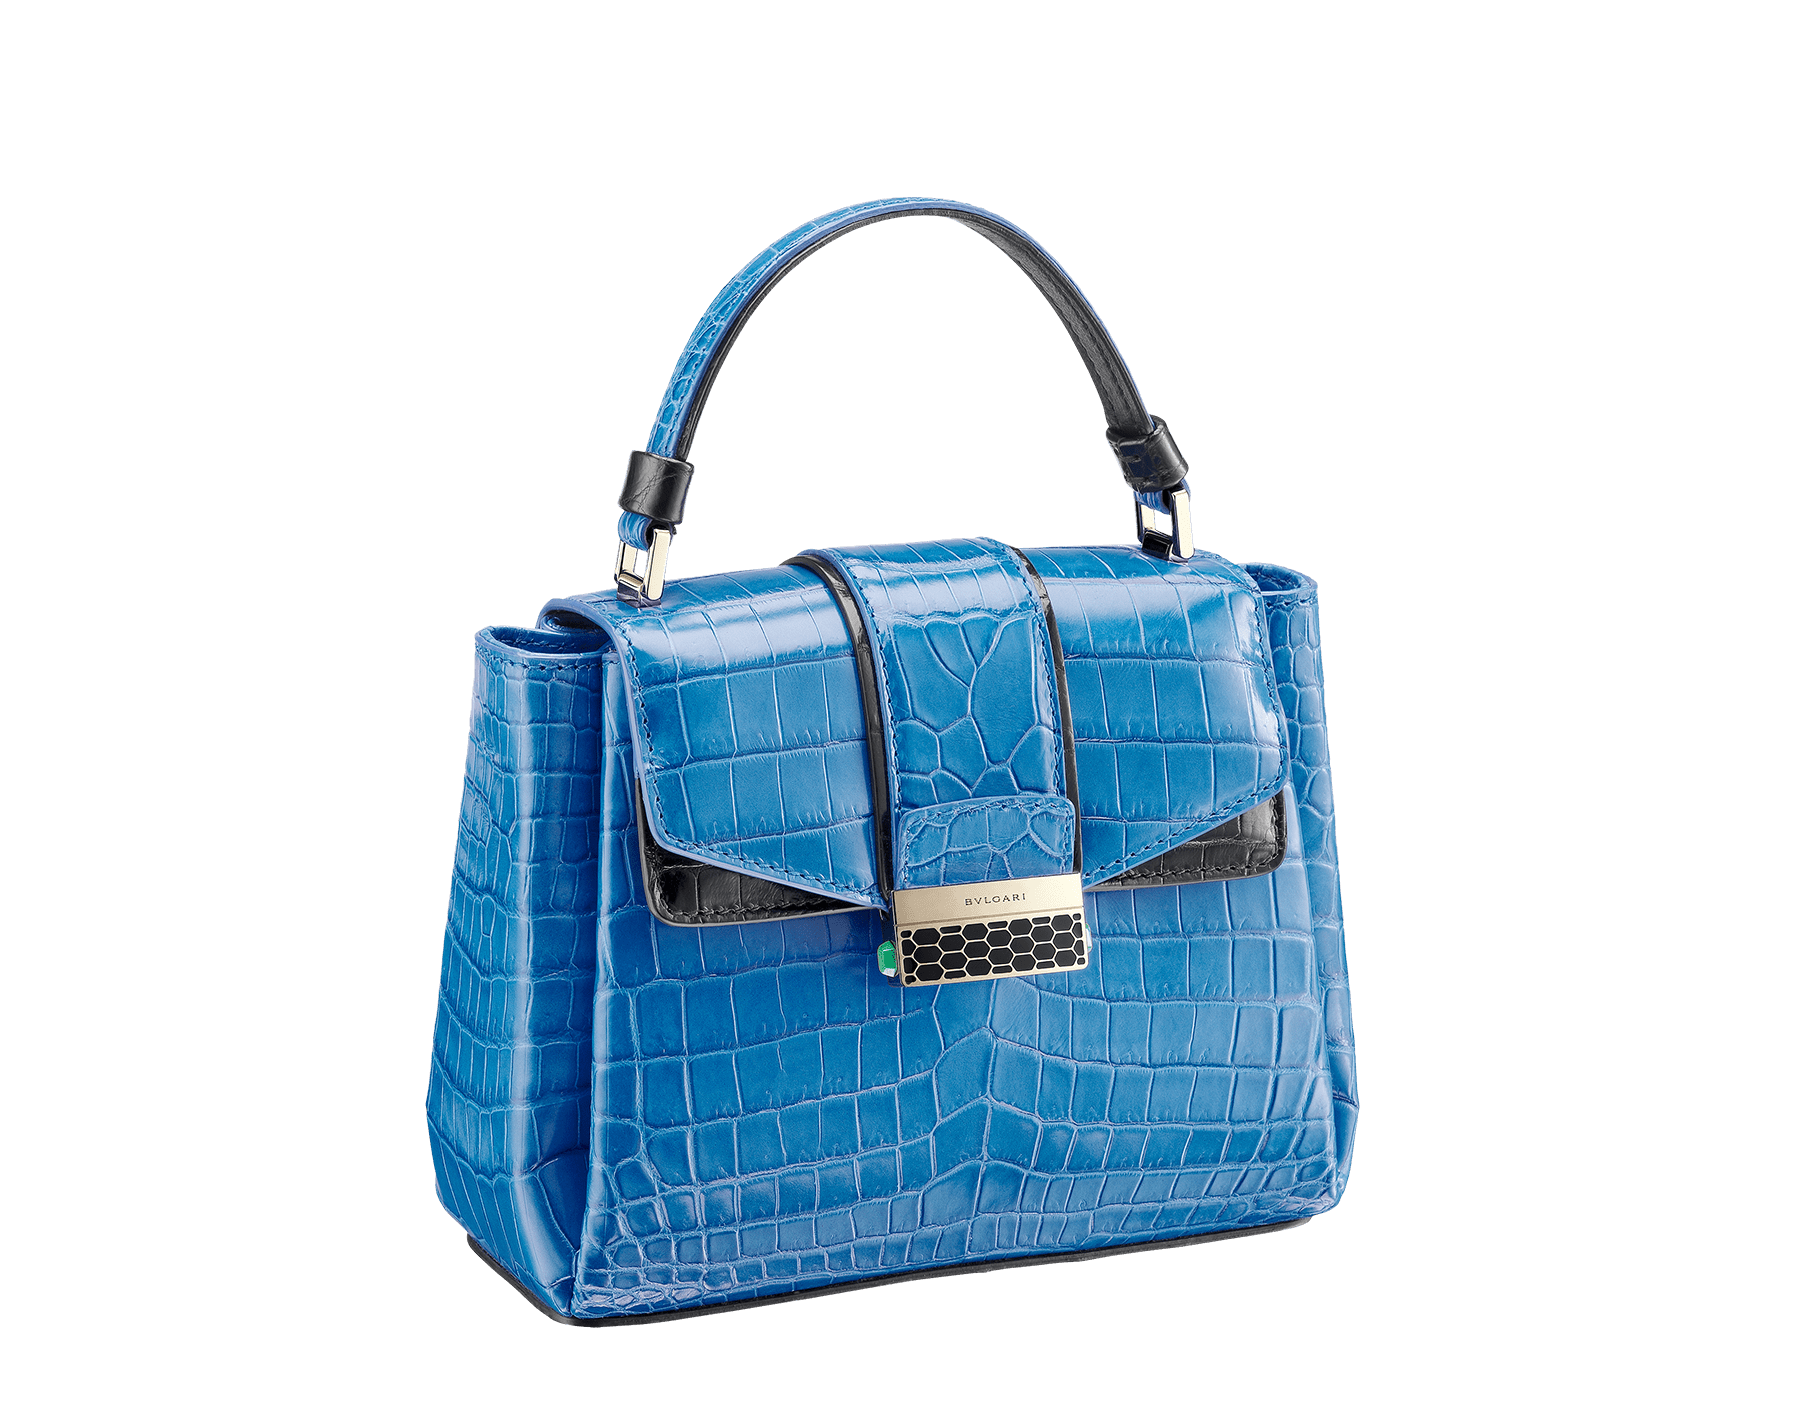 Top handle bag Serpenti Viper in cloud topaz and black shiny crocodile skin. 282924 image 2